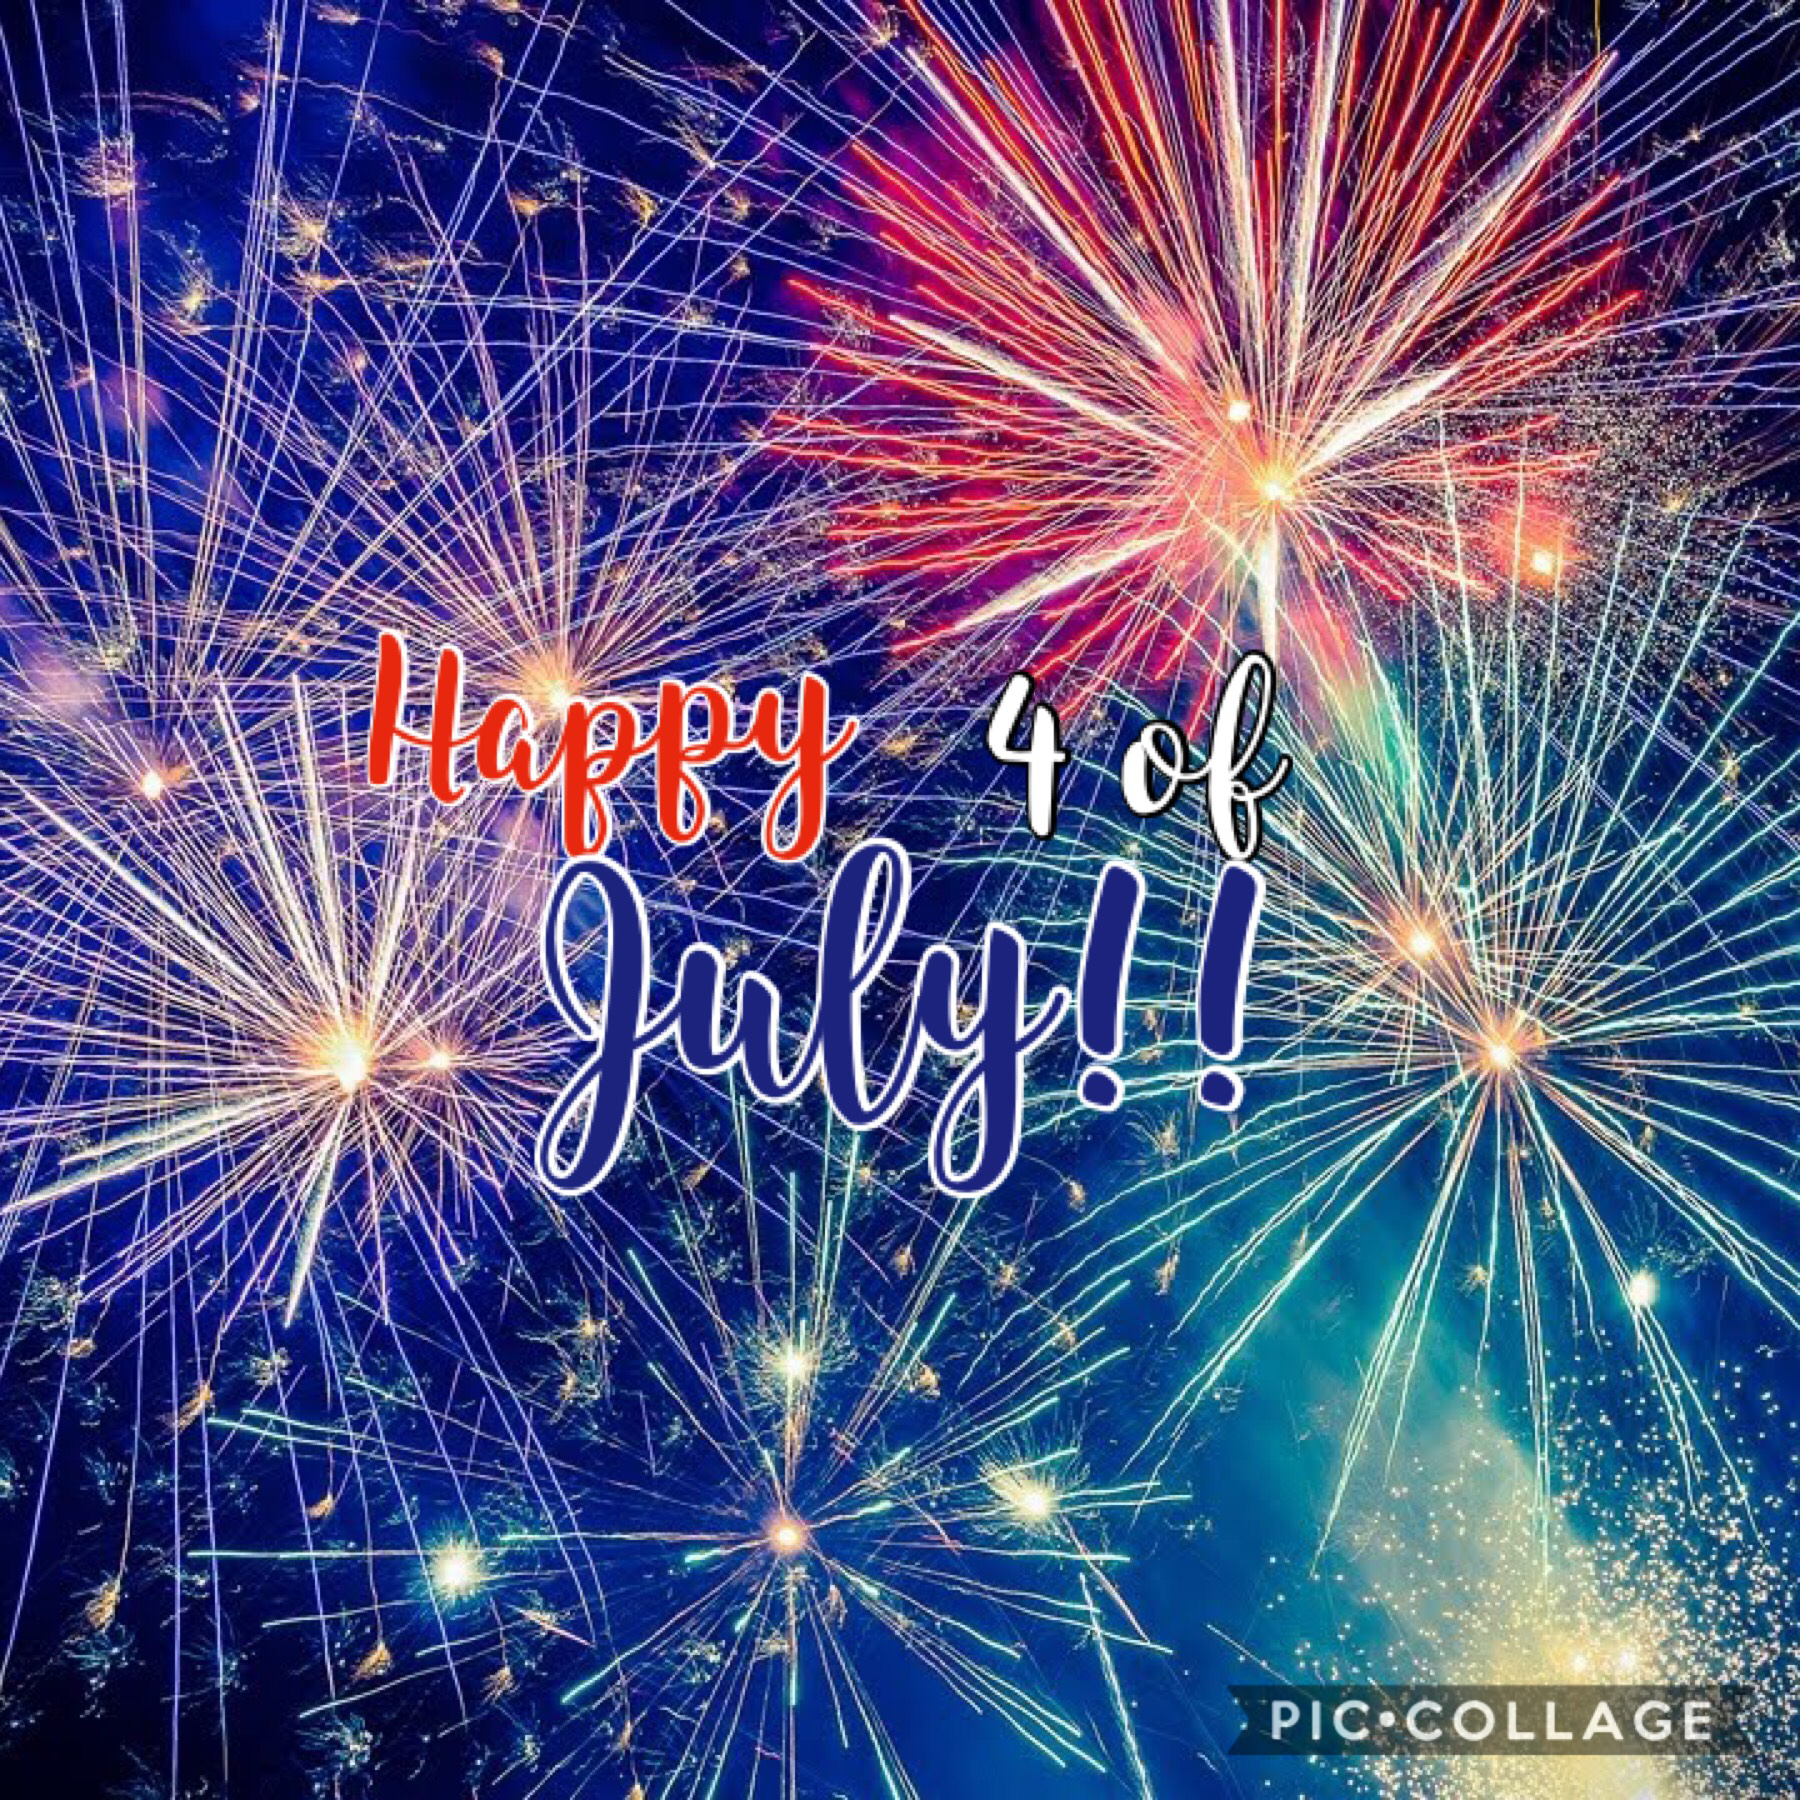 Hope you guys have a great Fourth of July!! I love you all soo much!! 😘